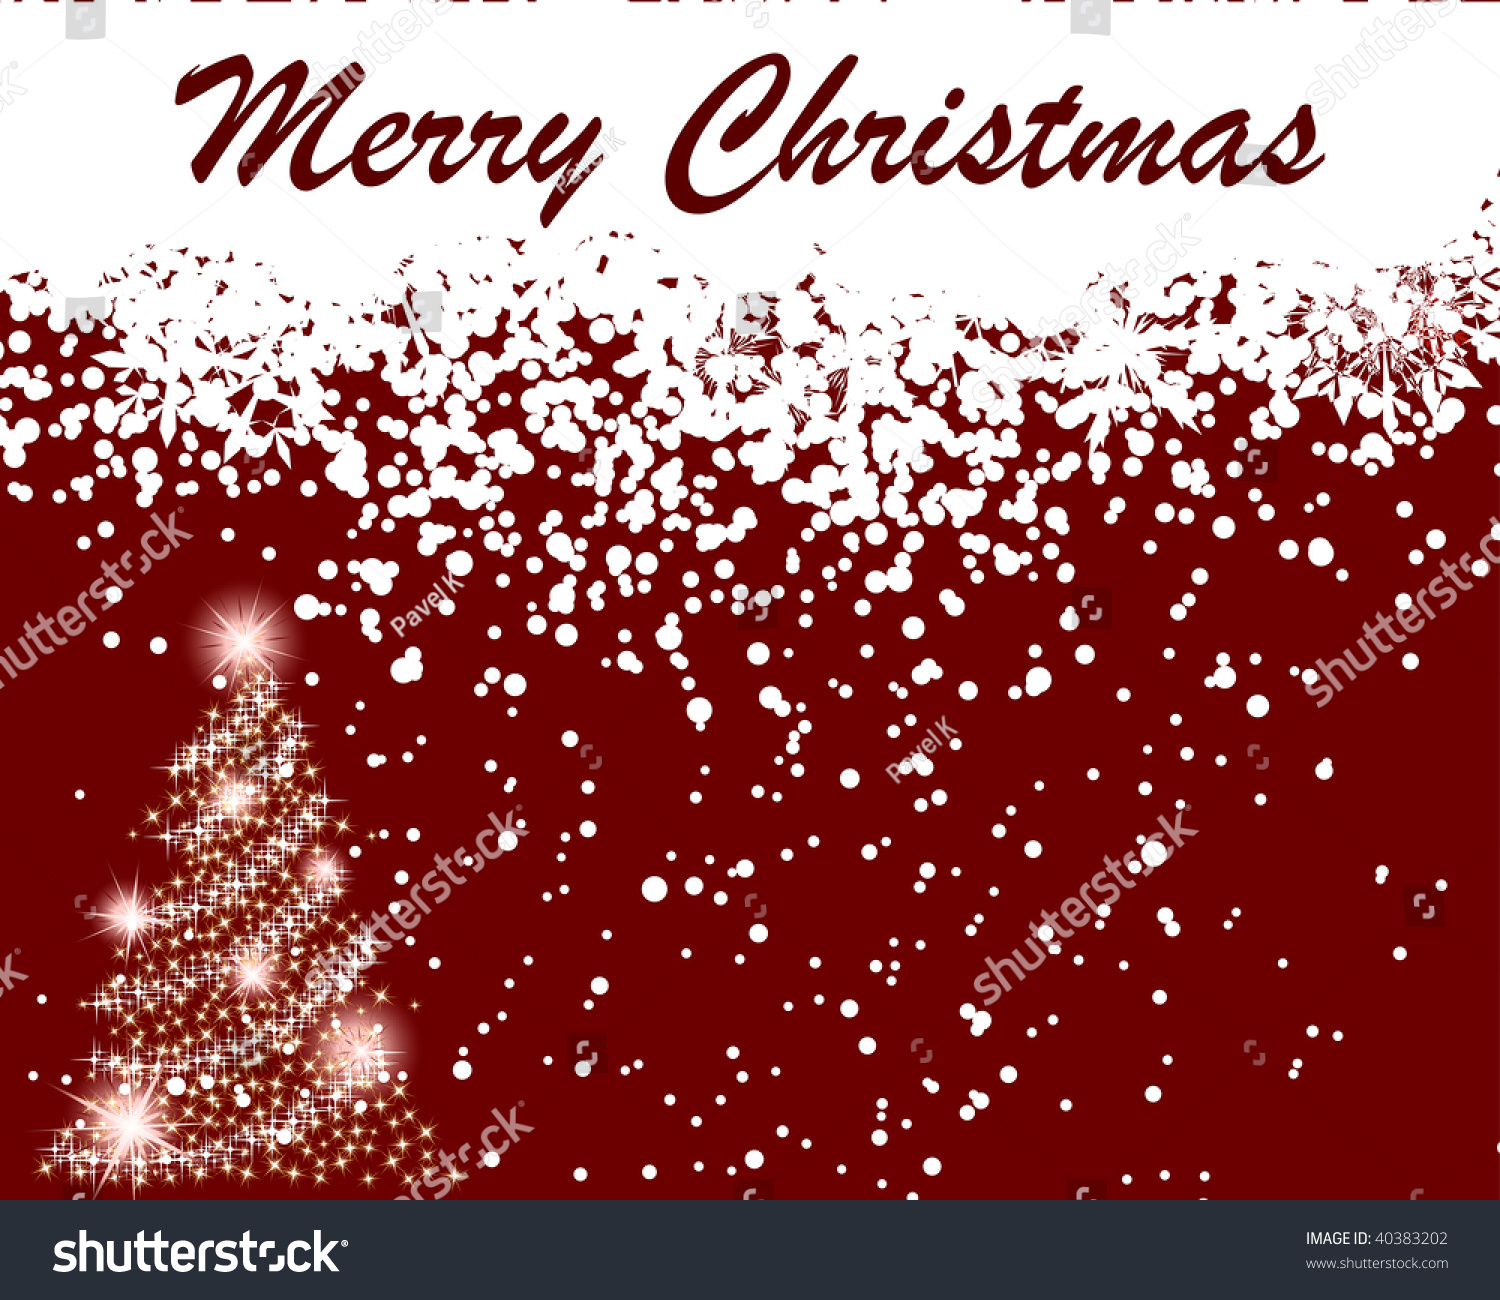 Beautiful vector christmas new year background for design use - Beautiful Vector Christmas New Year Background For Design Use